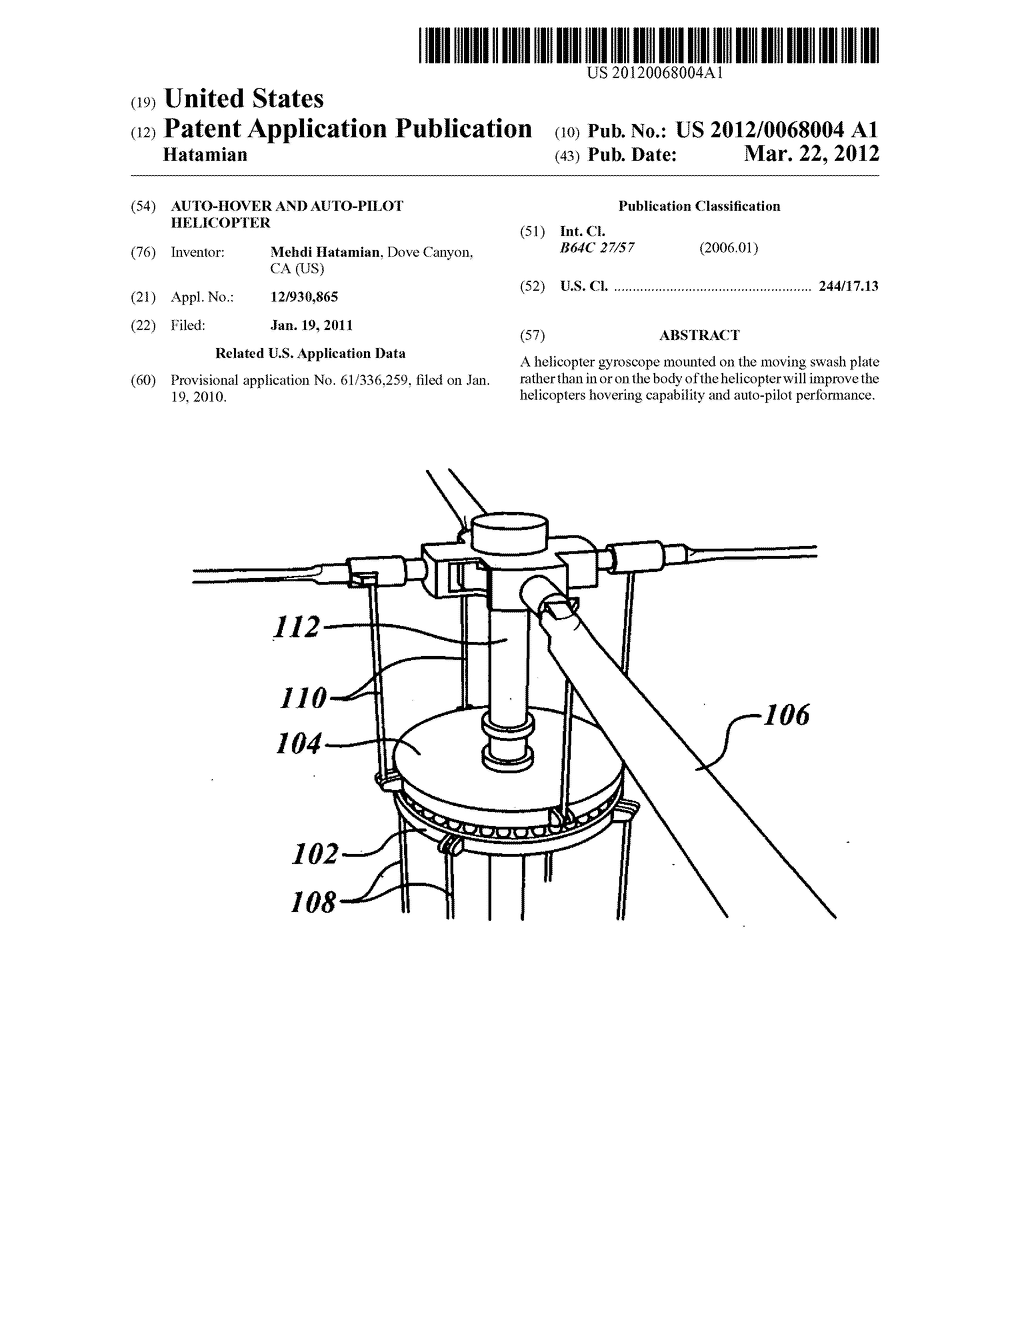 Auto-hover and auto-pilot helicopter - diagram, schematic ... on